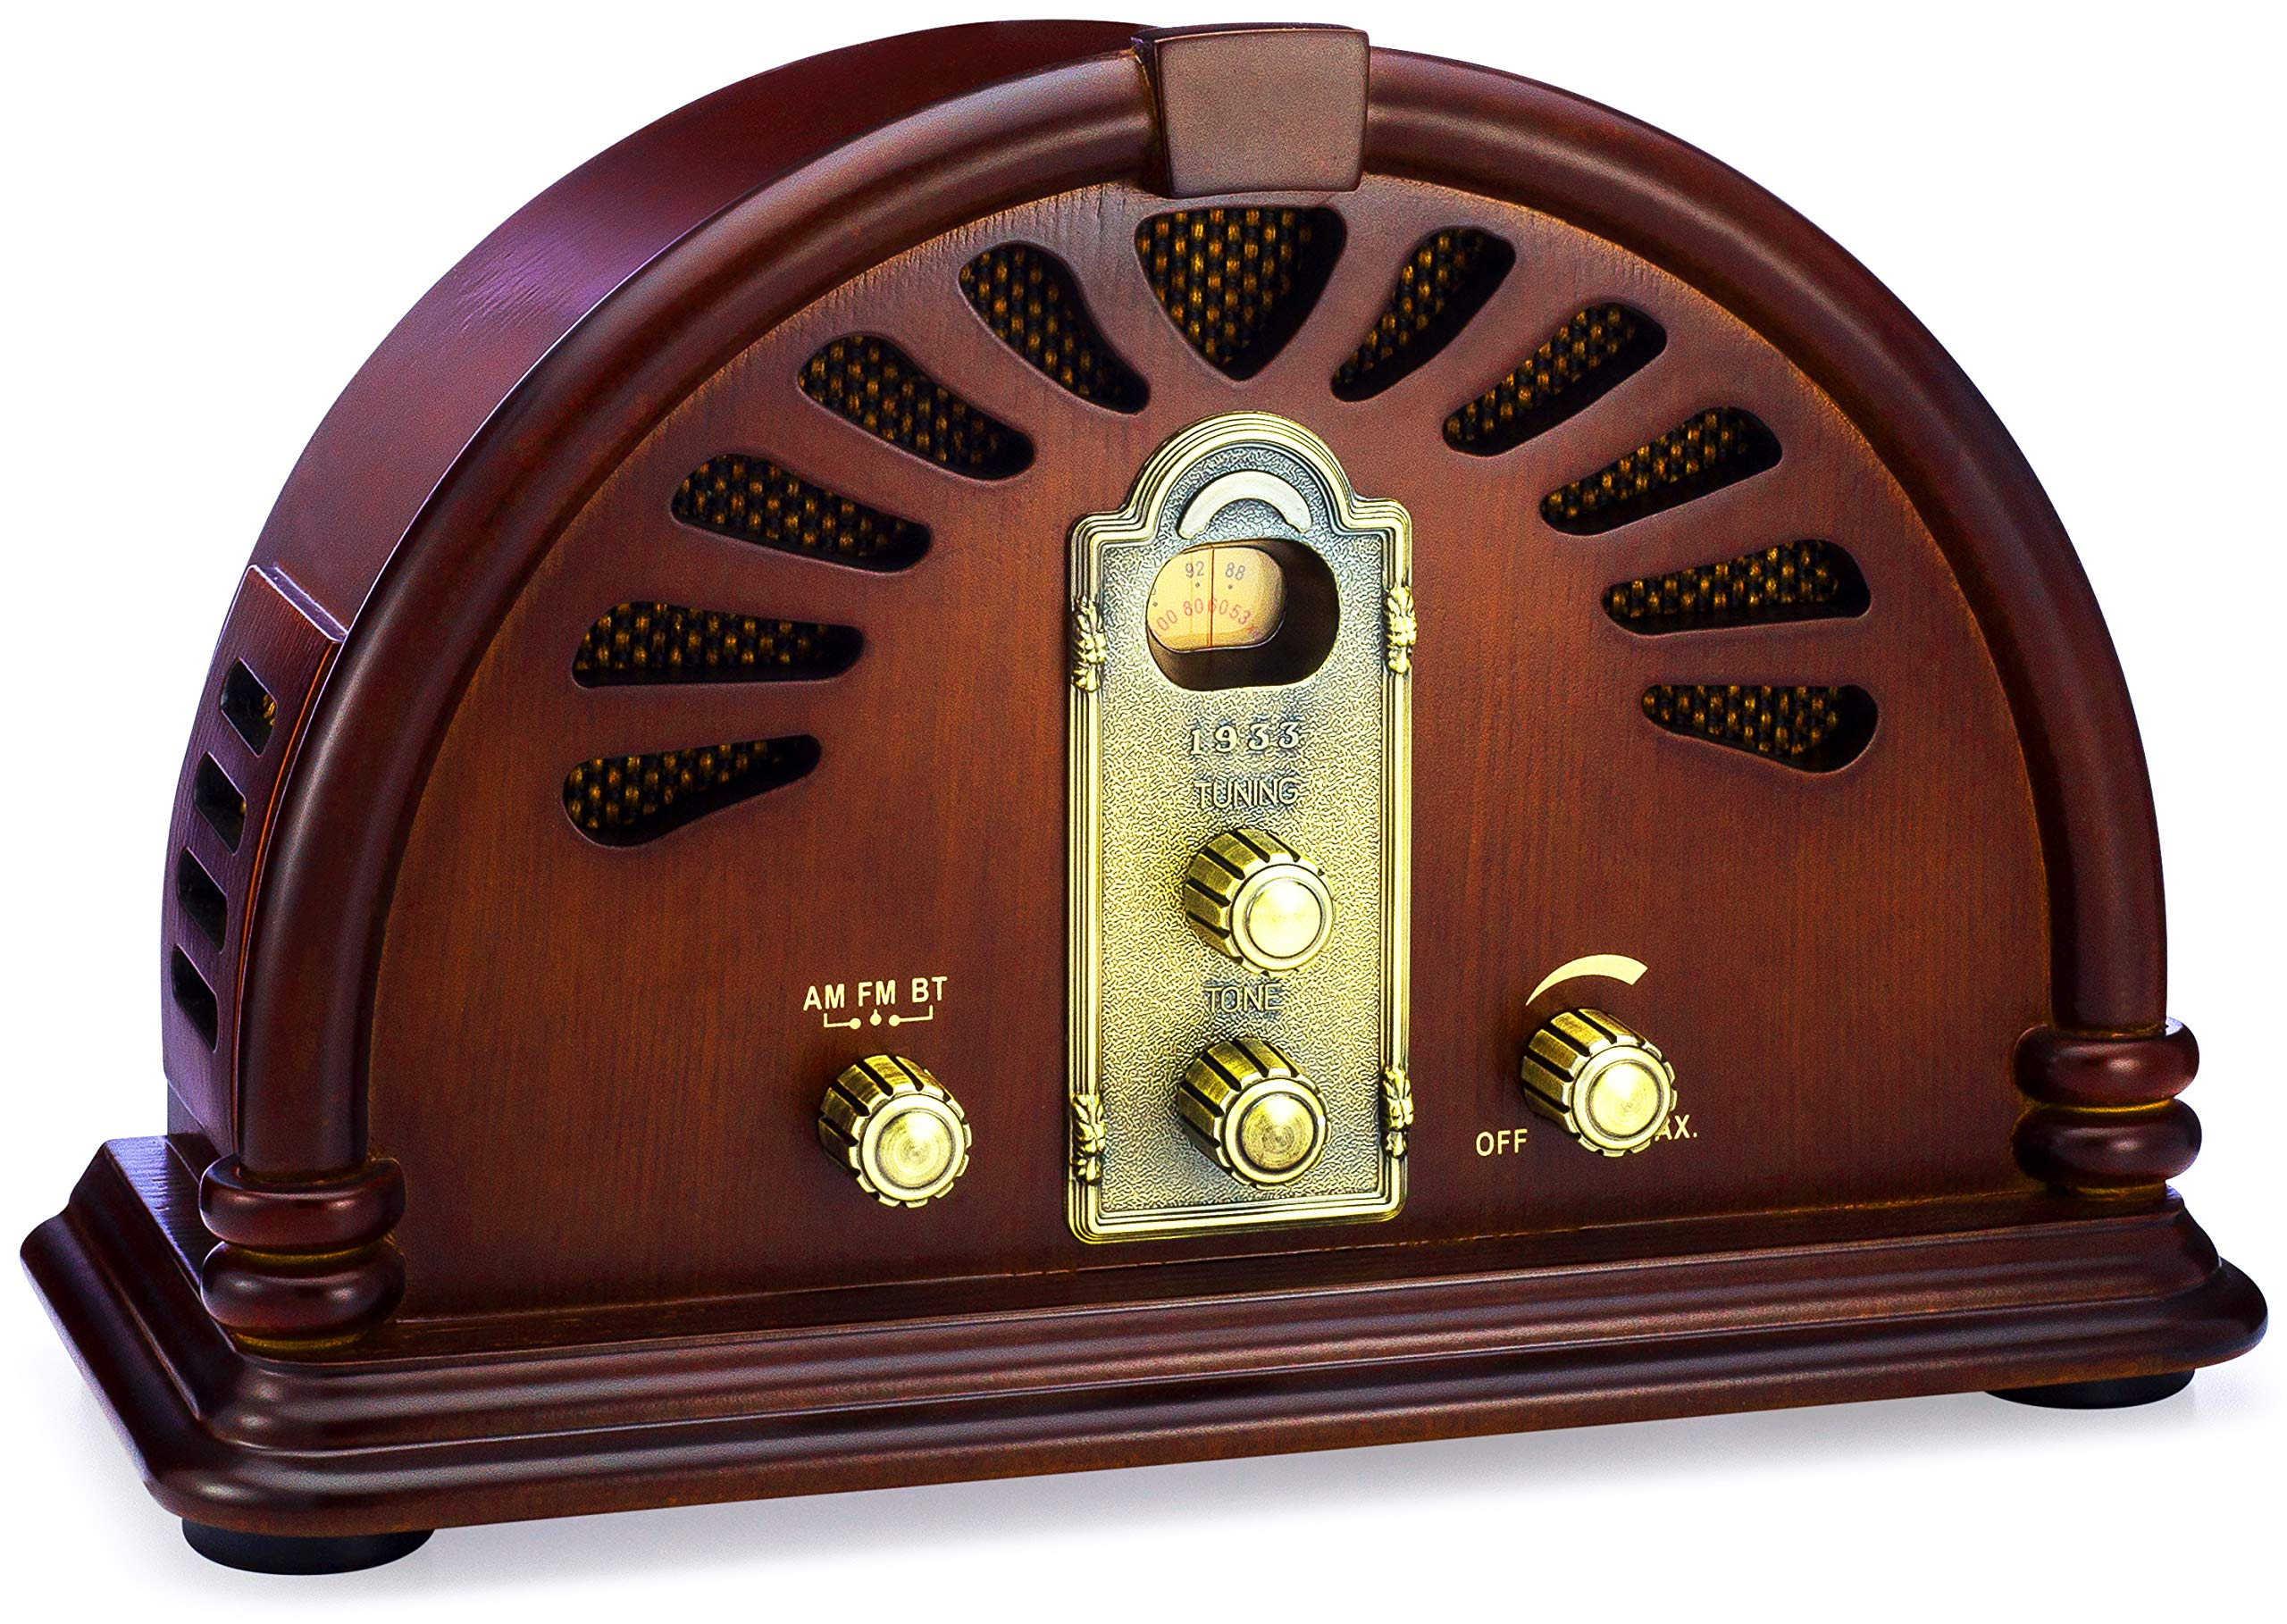 ClearClick Classic Vintage Retro Style AM/FM Radio with Bluetooth - Handmade Wooden Exterior by ClearClick